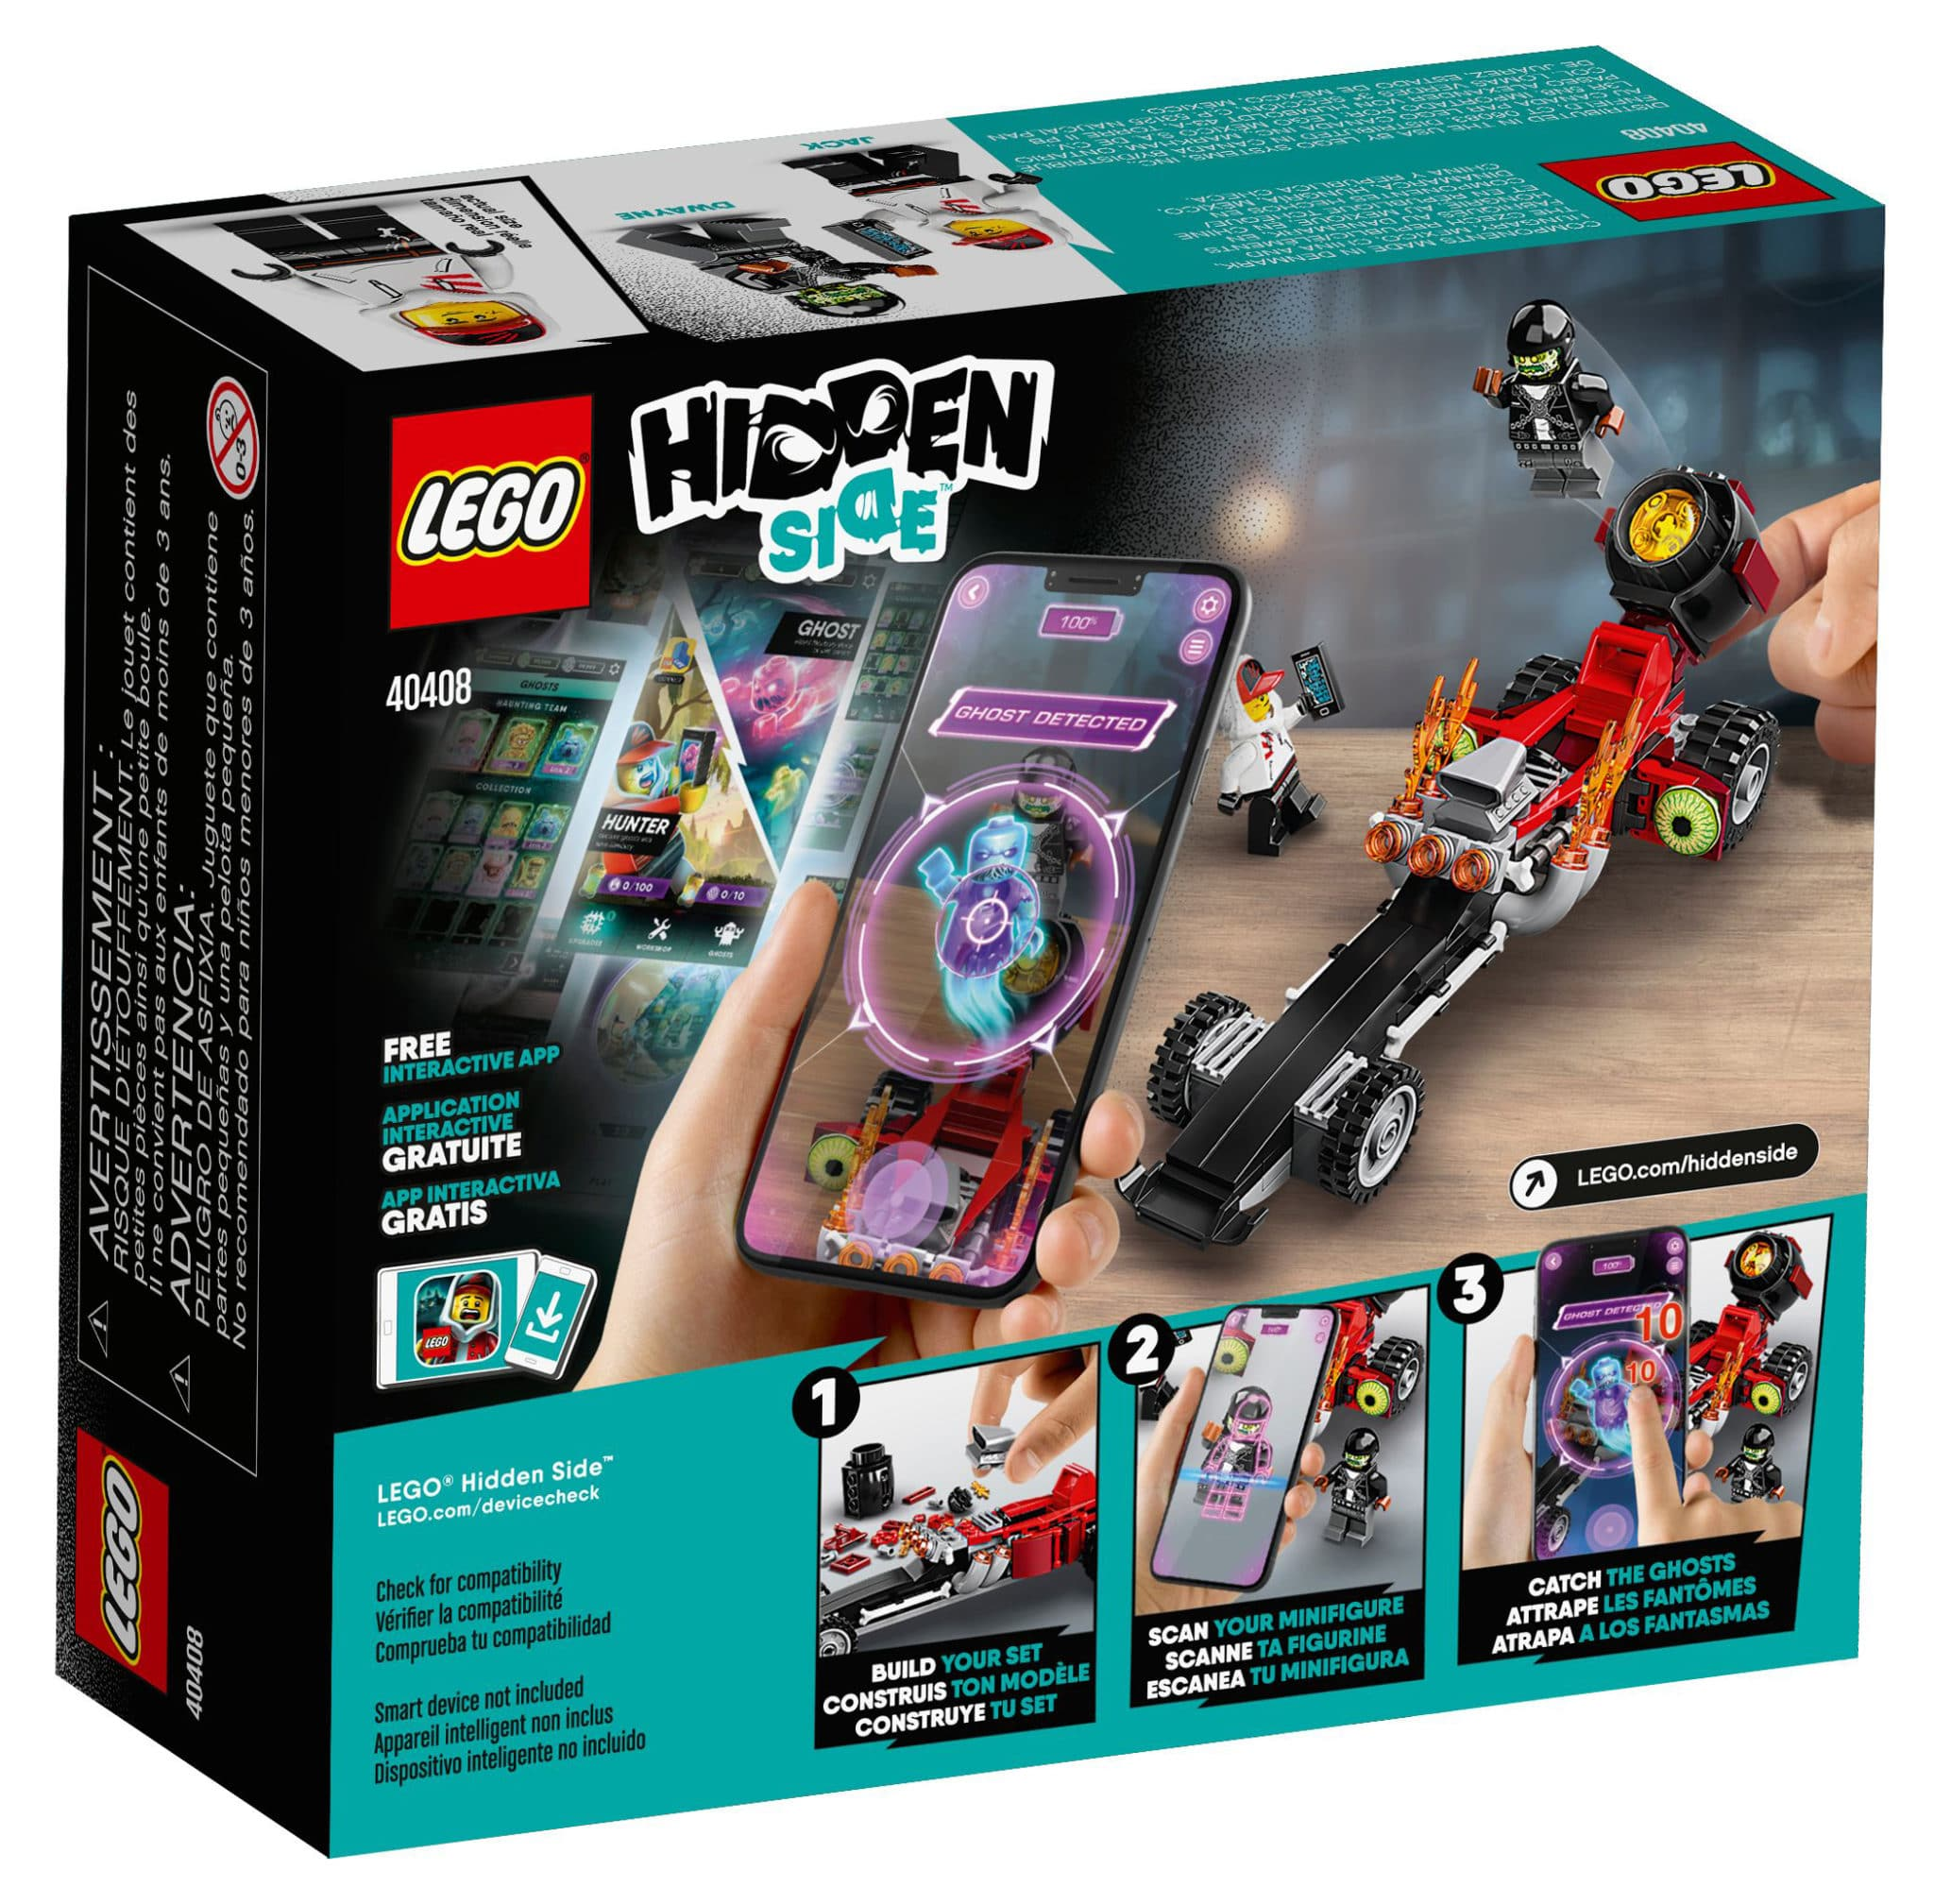 LEGO Hidden Side 40408 Drag Racer